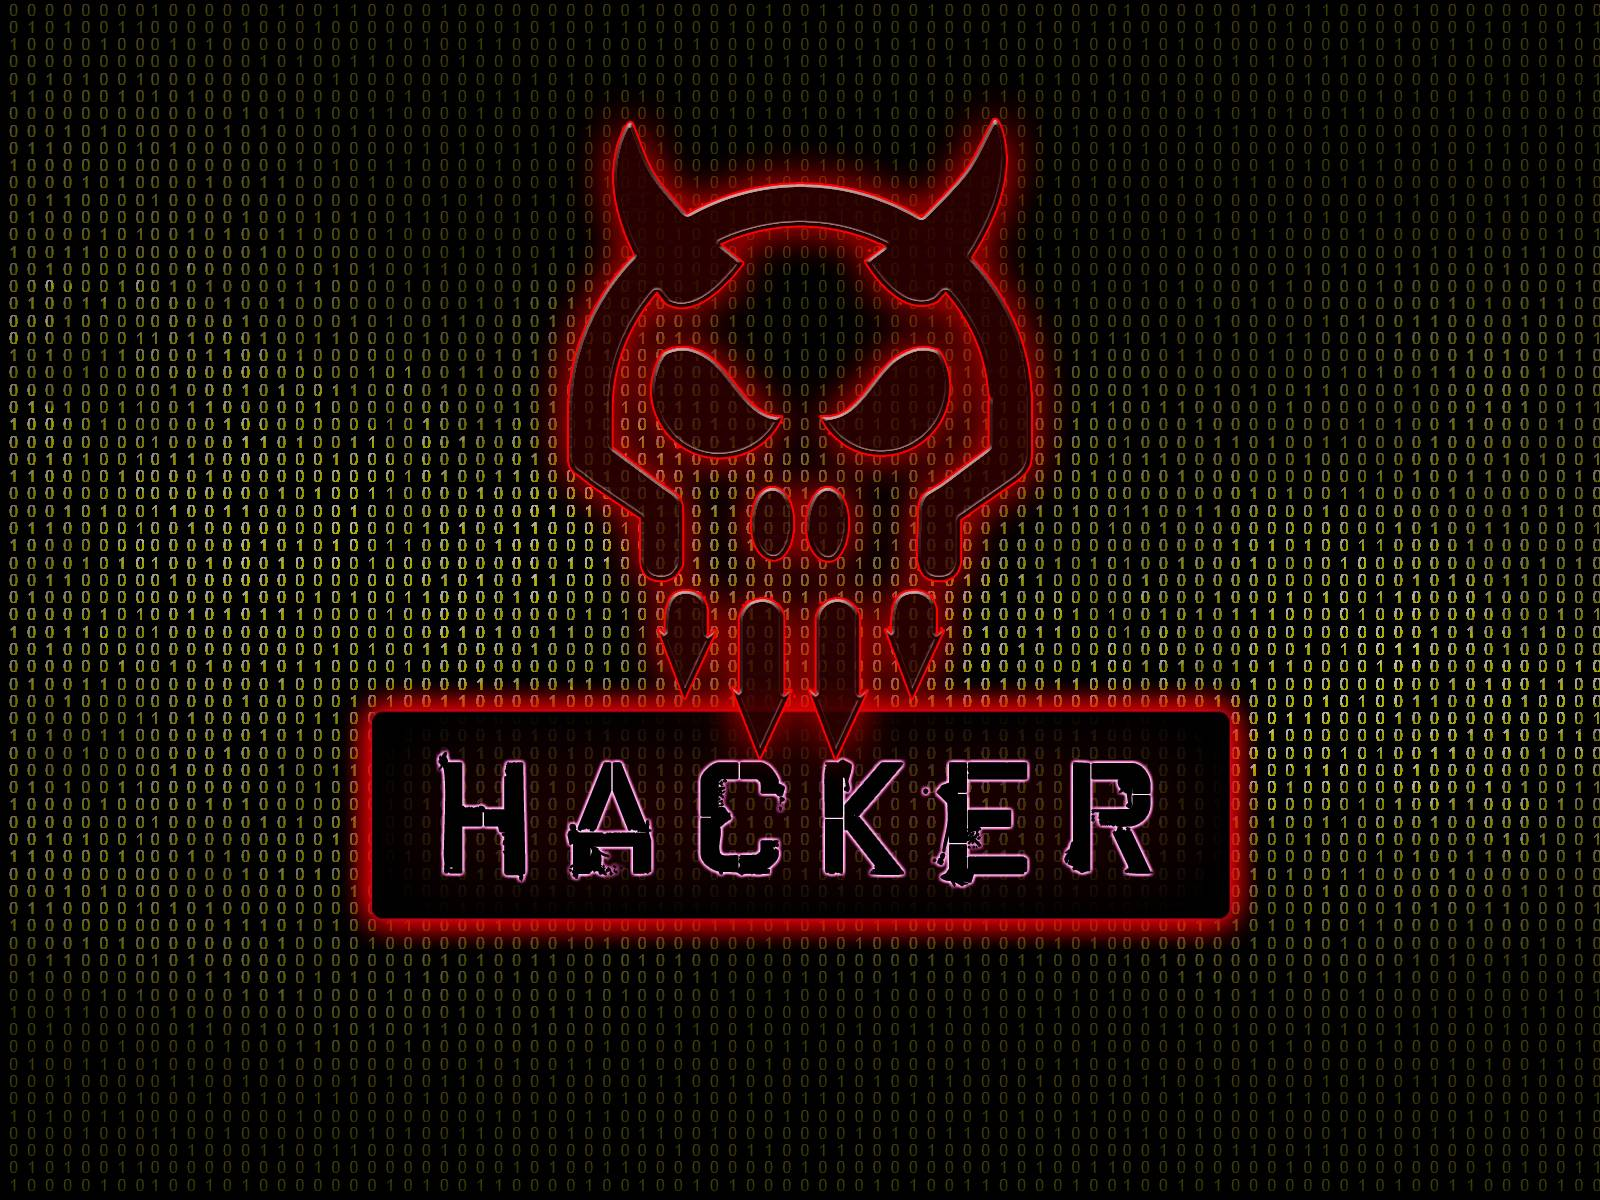 hackers wallpaper wallpapers de - photo #12